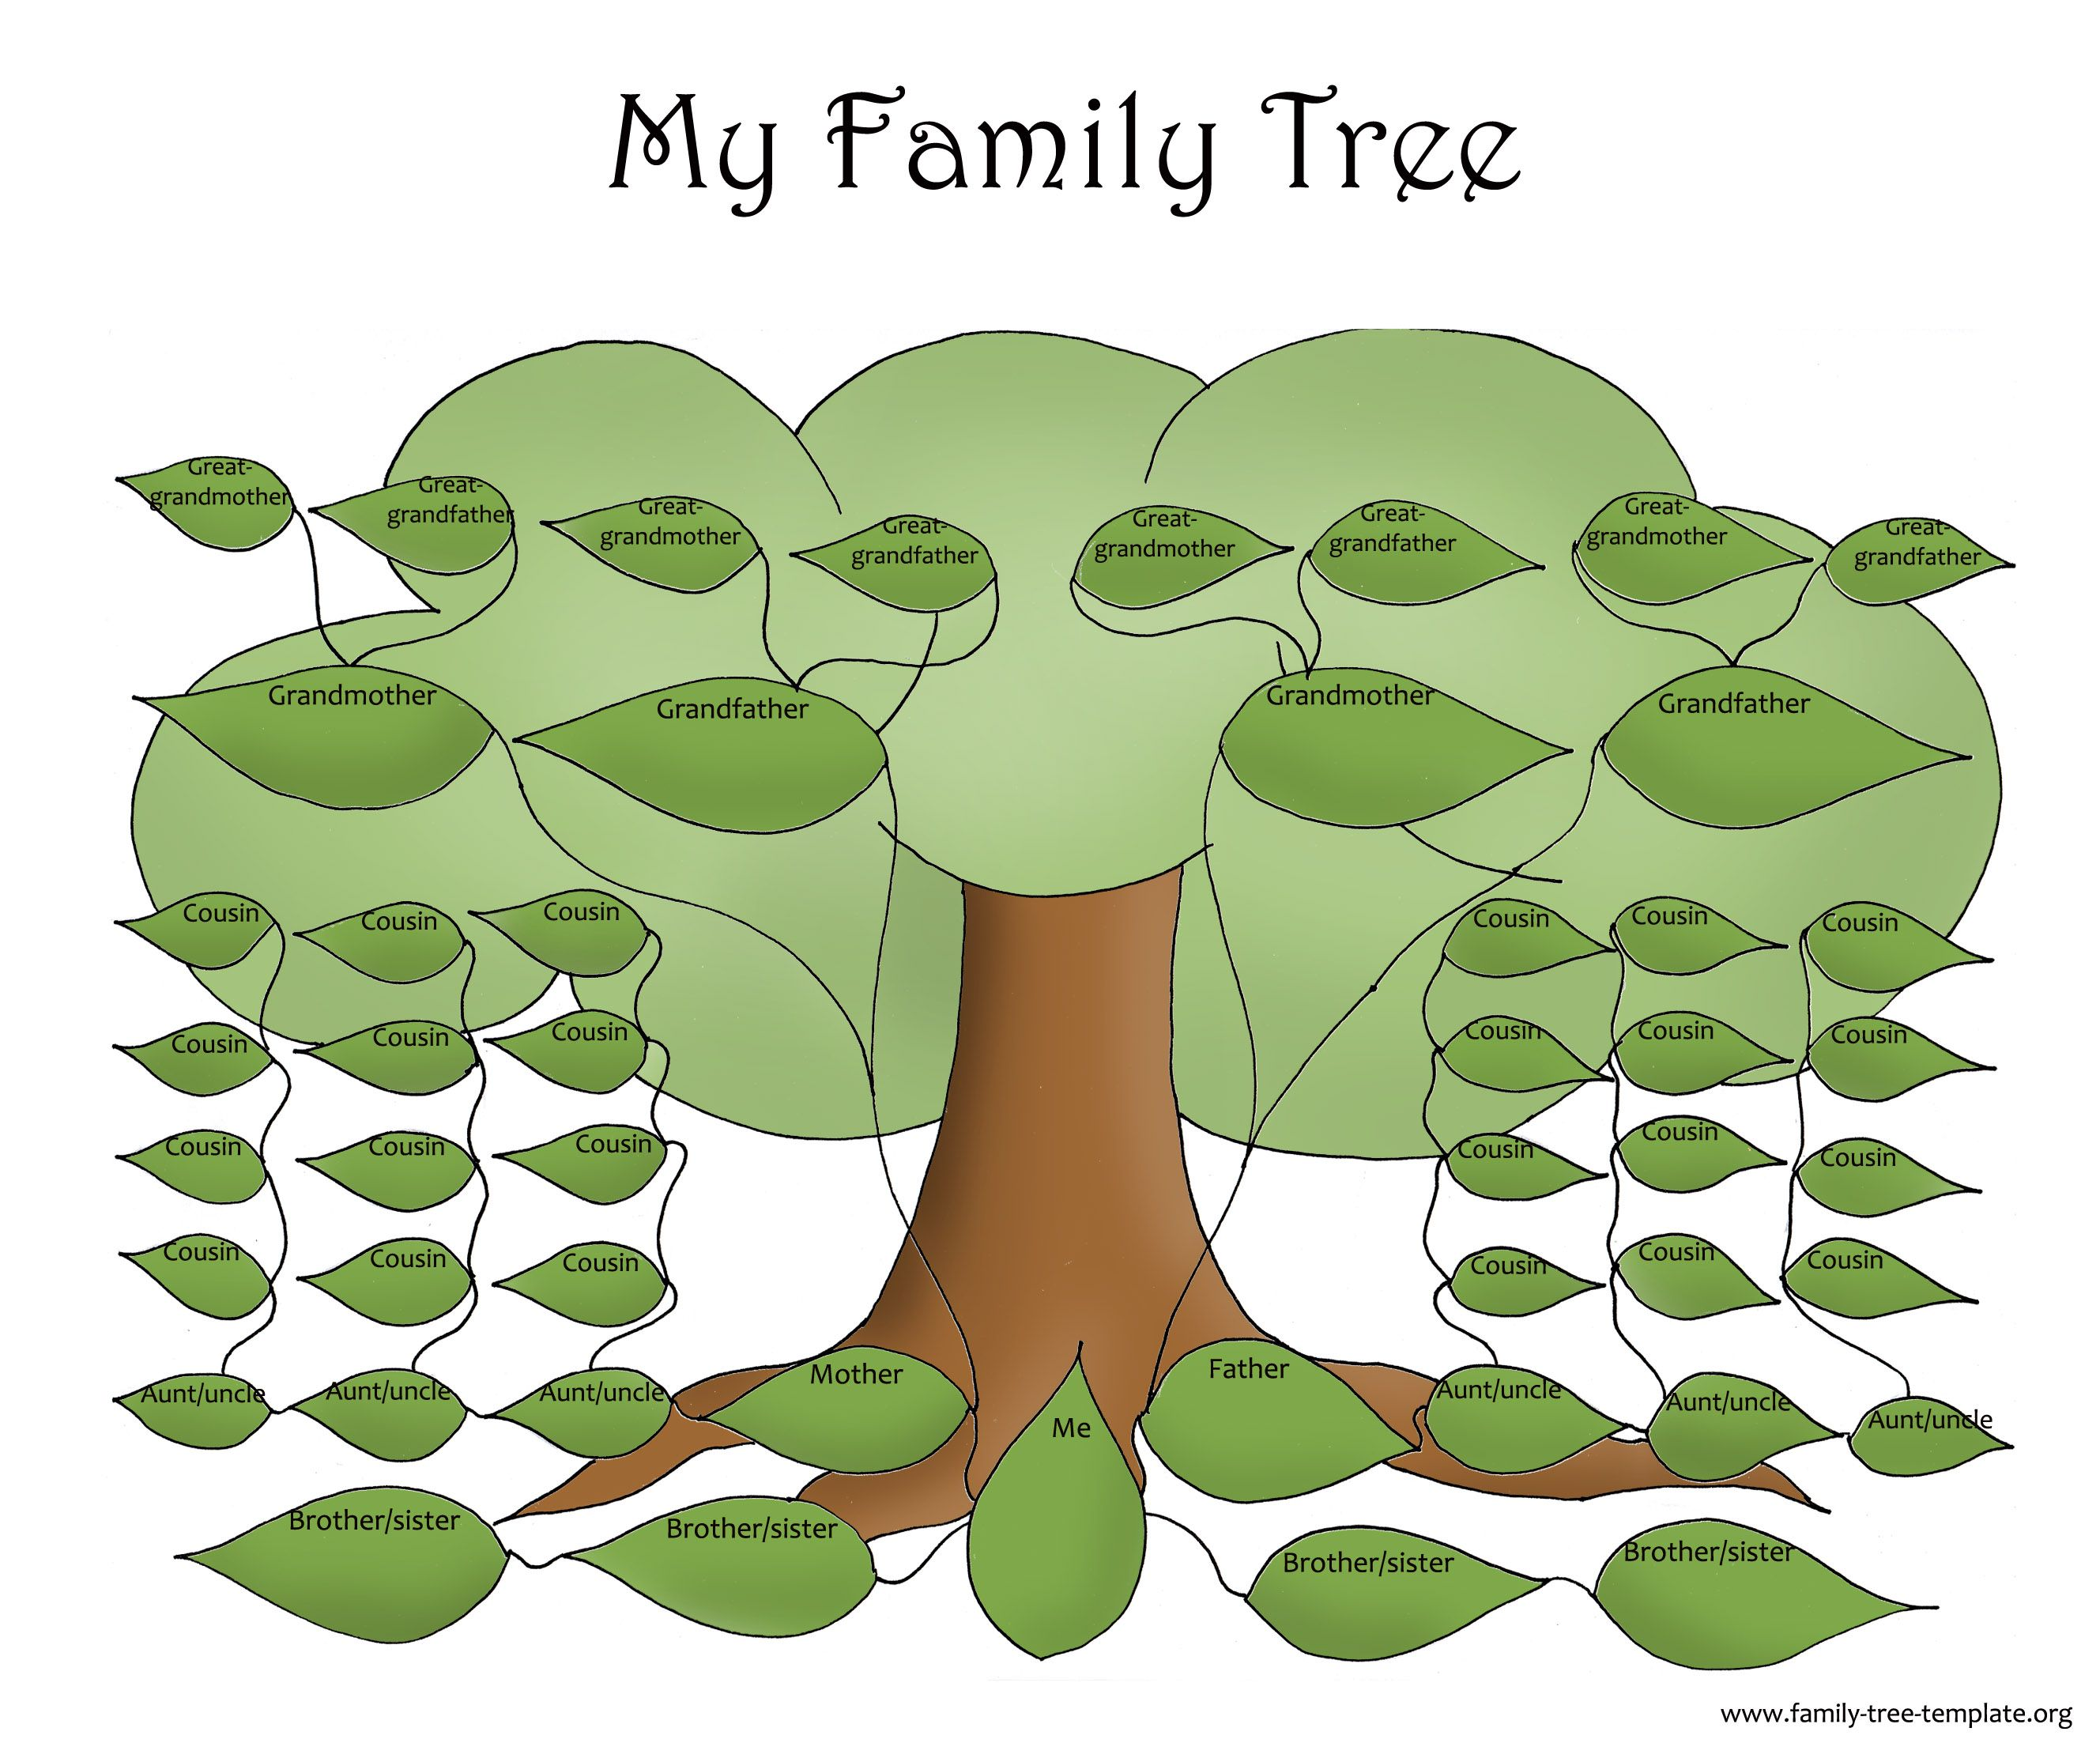 Family Tree templates | family tree template | Pinterest | Family ...